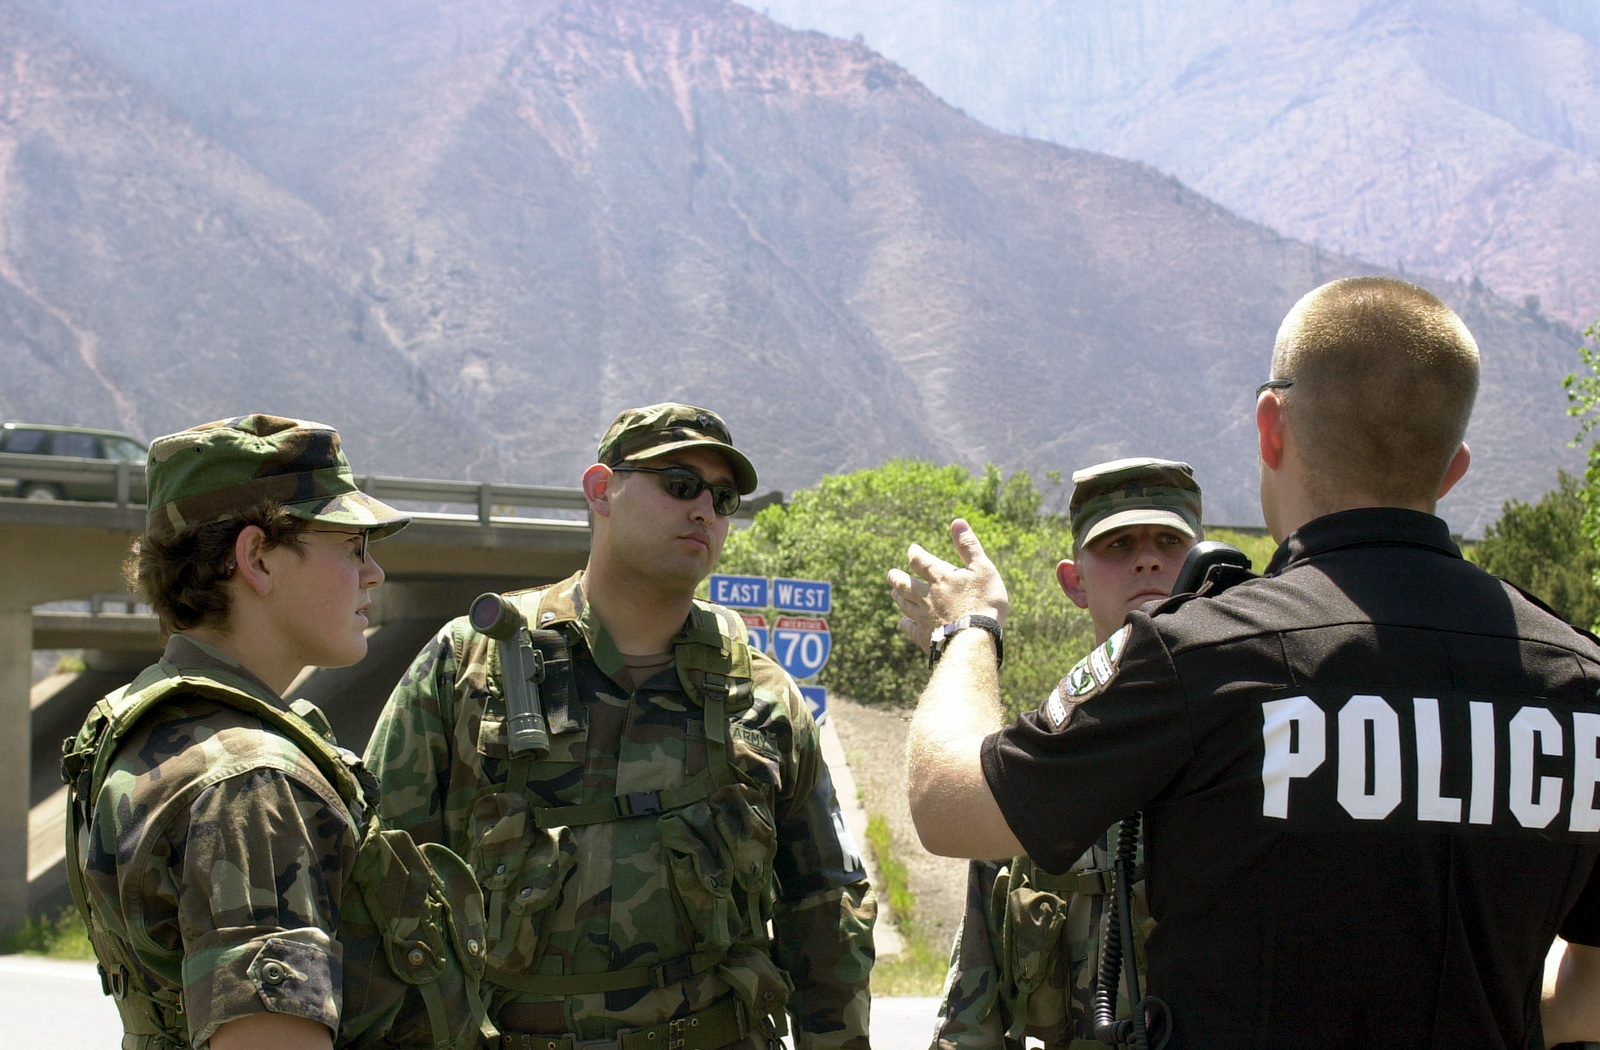 At an entrance to Interstate Highway 70 (I-70), a member of the Glenwood Springs Police Department brief members of the 220th Military Police (MP) Company, Colorado Army National Guard (COARNG) on the Coal Seam Fires. The 220th MP will set up security access control points along the perimeter including I-70. The Coal Seam Fire started sometime in the mid-1970s as an underground fire burned along a rich vein of coal. Occassionally the fire breaks through to the surface. At this time it had burned 7,300 acres, damaged an estimated 40 structures, and caused the evacuation of 2,000 residents